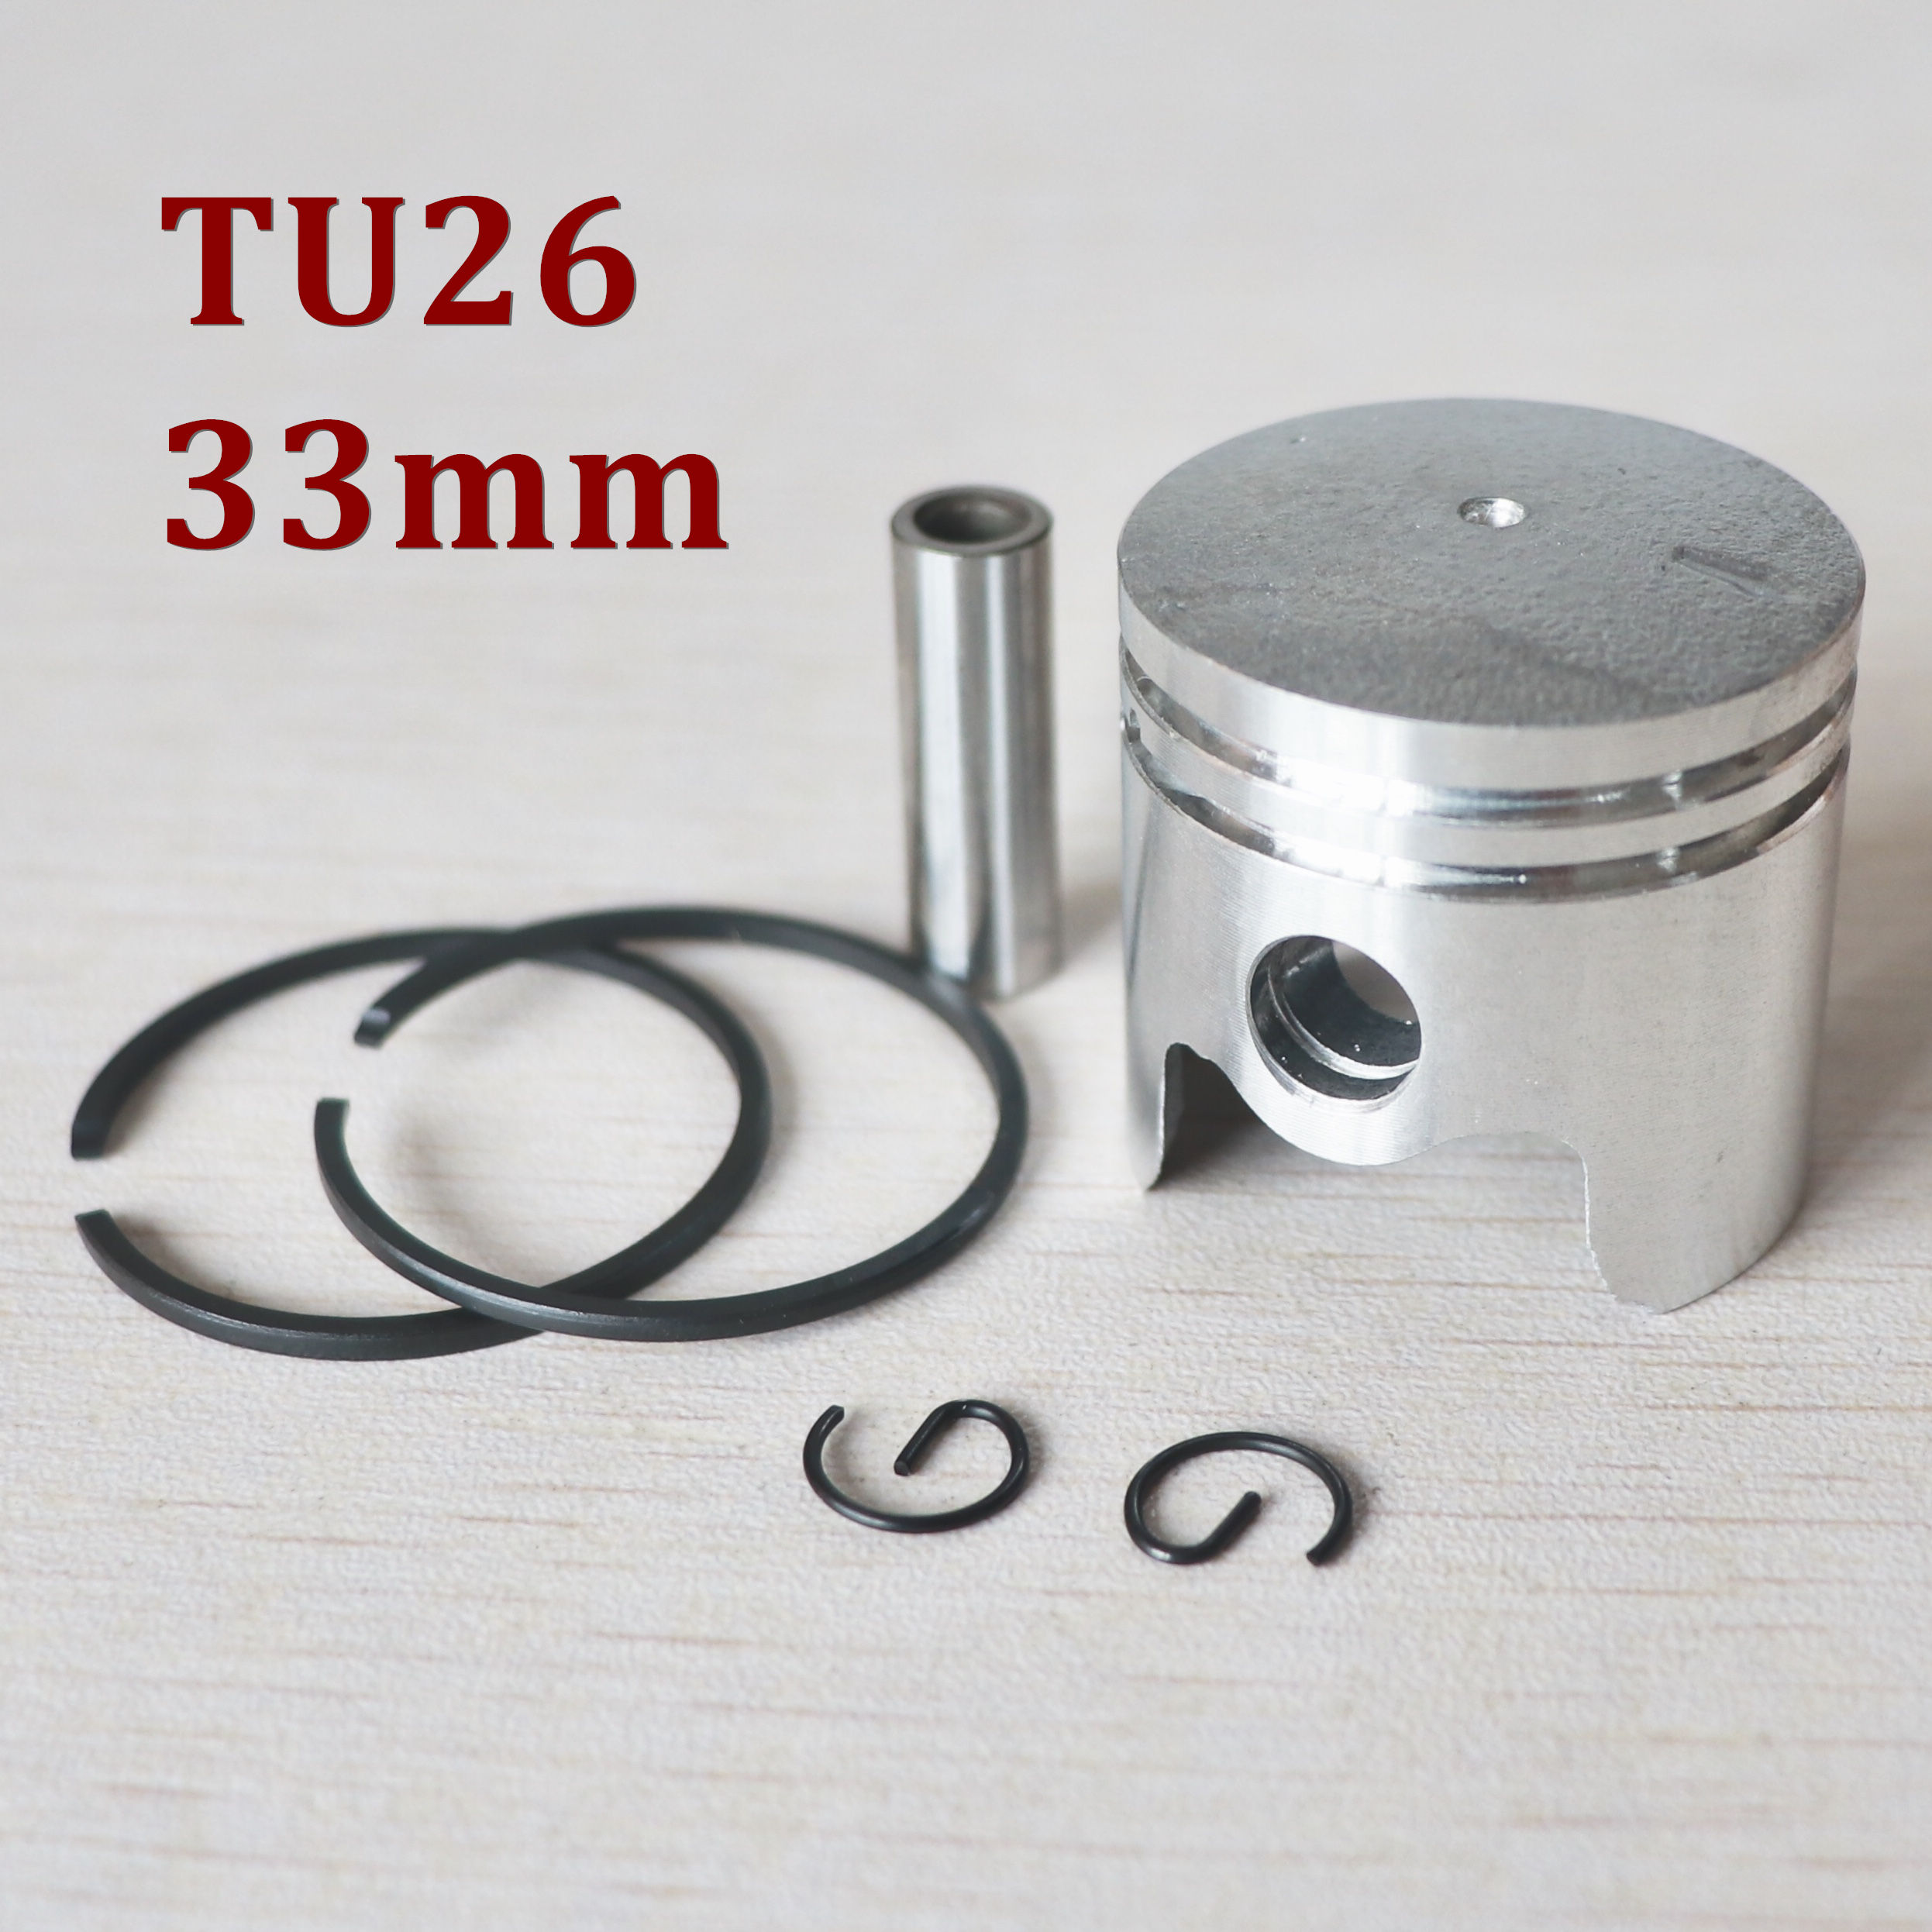 Power Sprayer Parts Brush Cutter TU26 Trimmer Piston Set